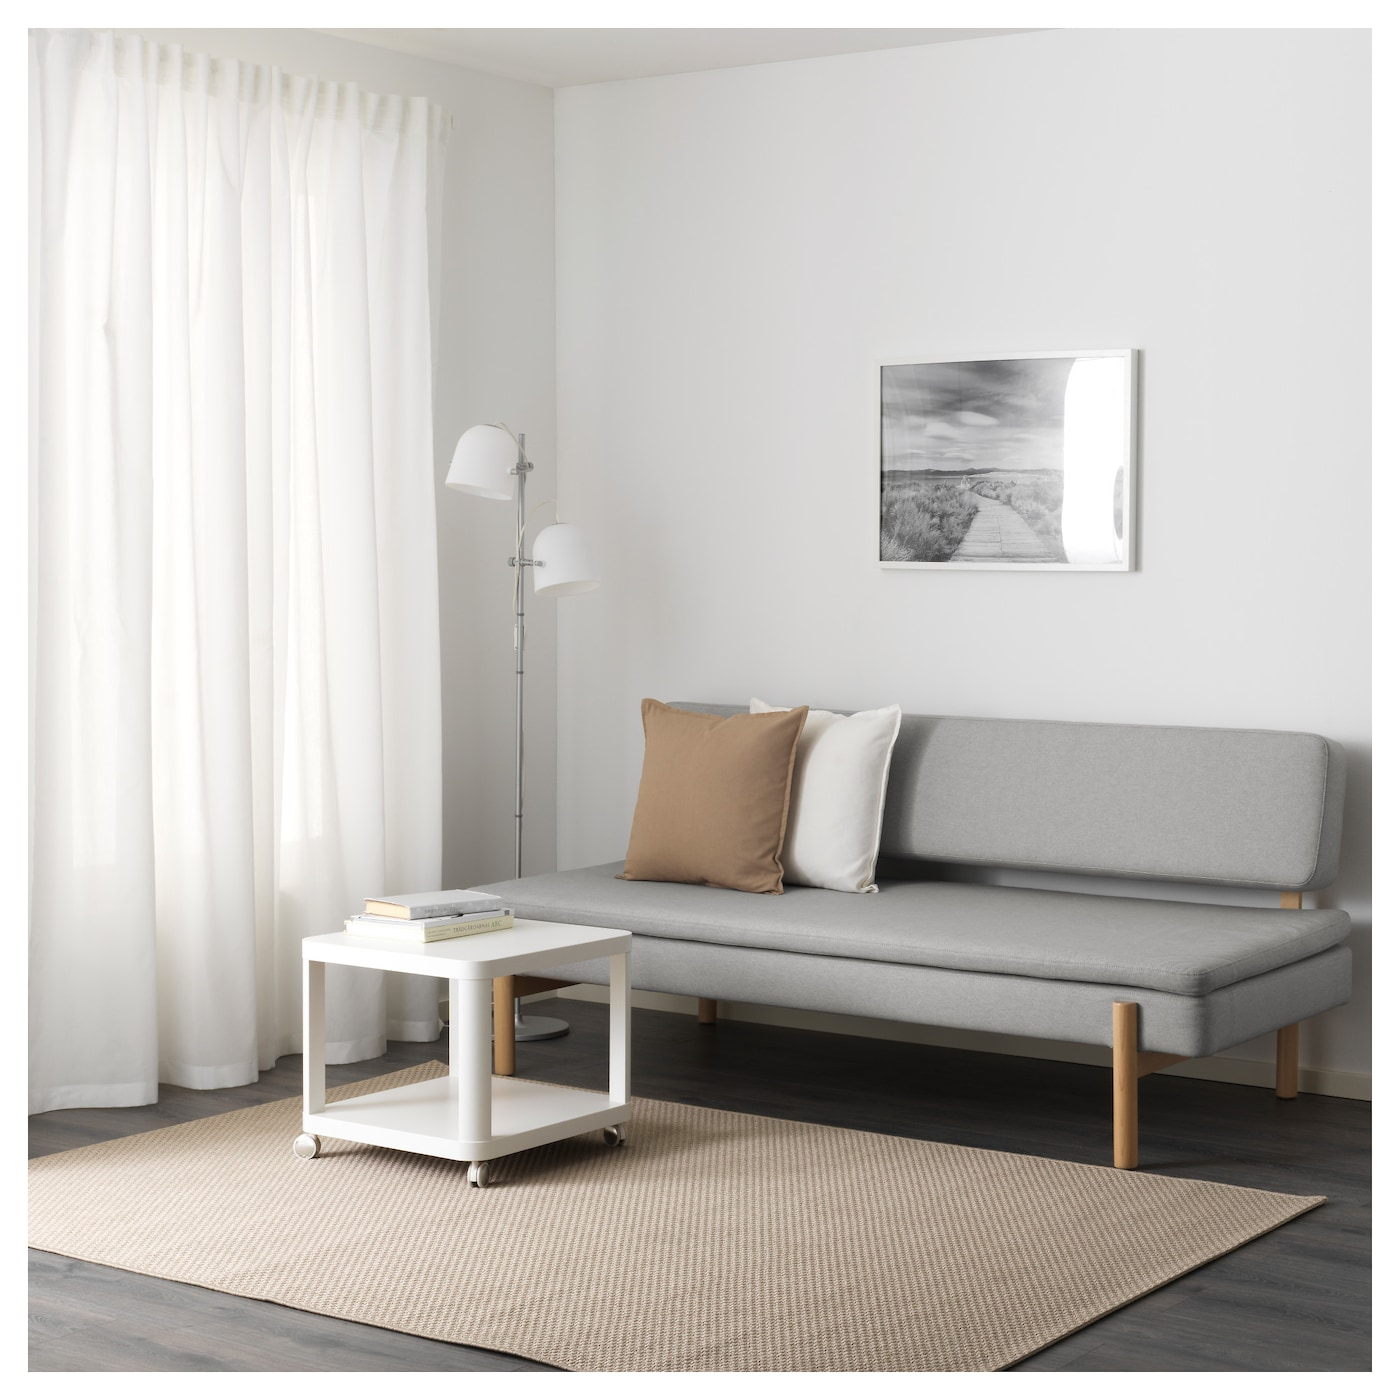 IKEA YPPERLIG 3-seat sofa bed